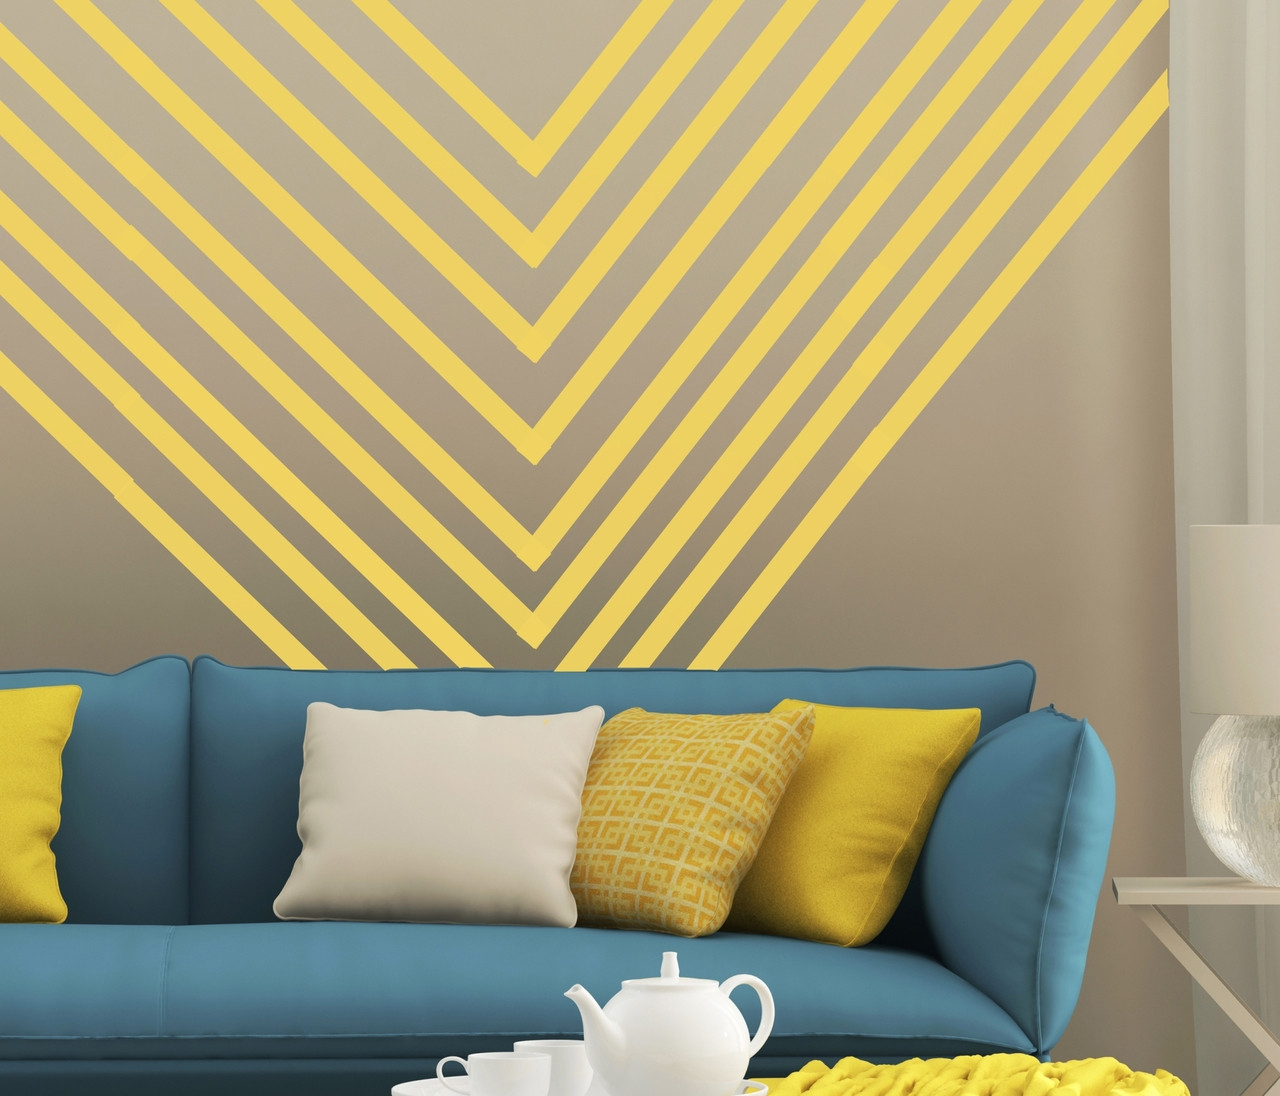 Wall Decal Stripes Vinyl Stickers To Make A Room Border Or Stripes For Cool Room Décor